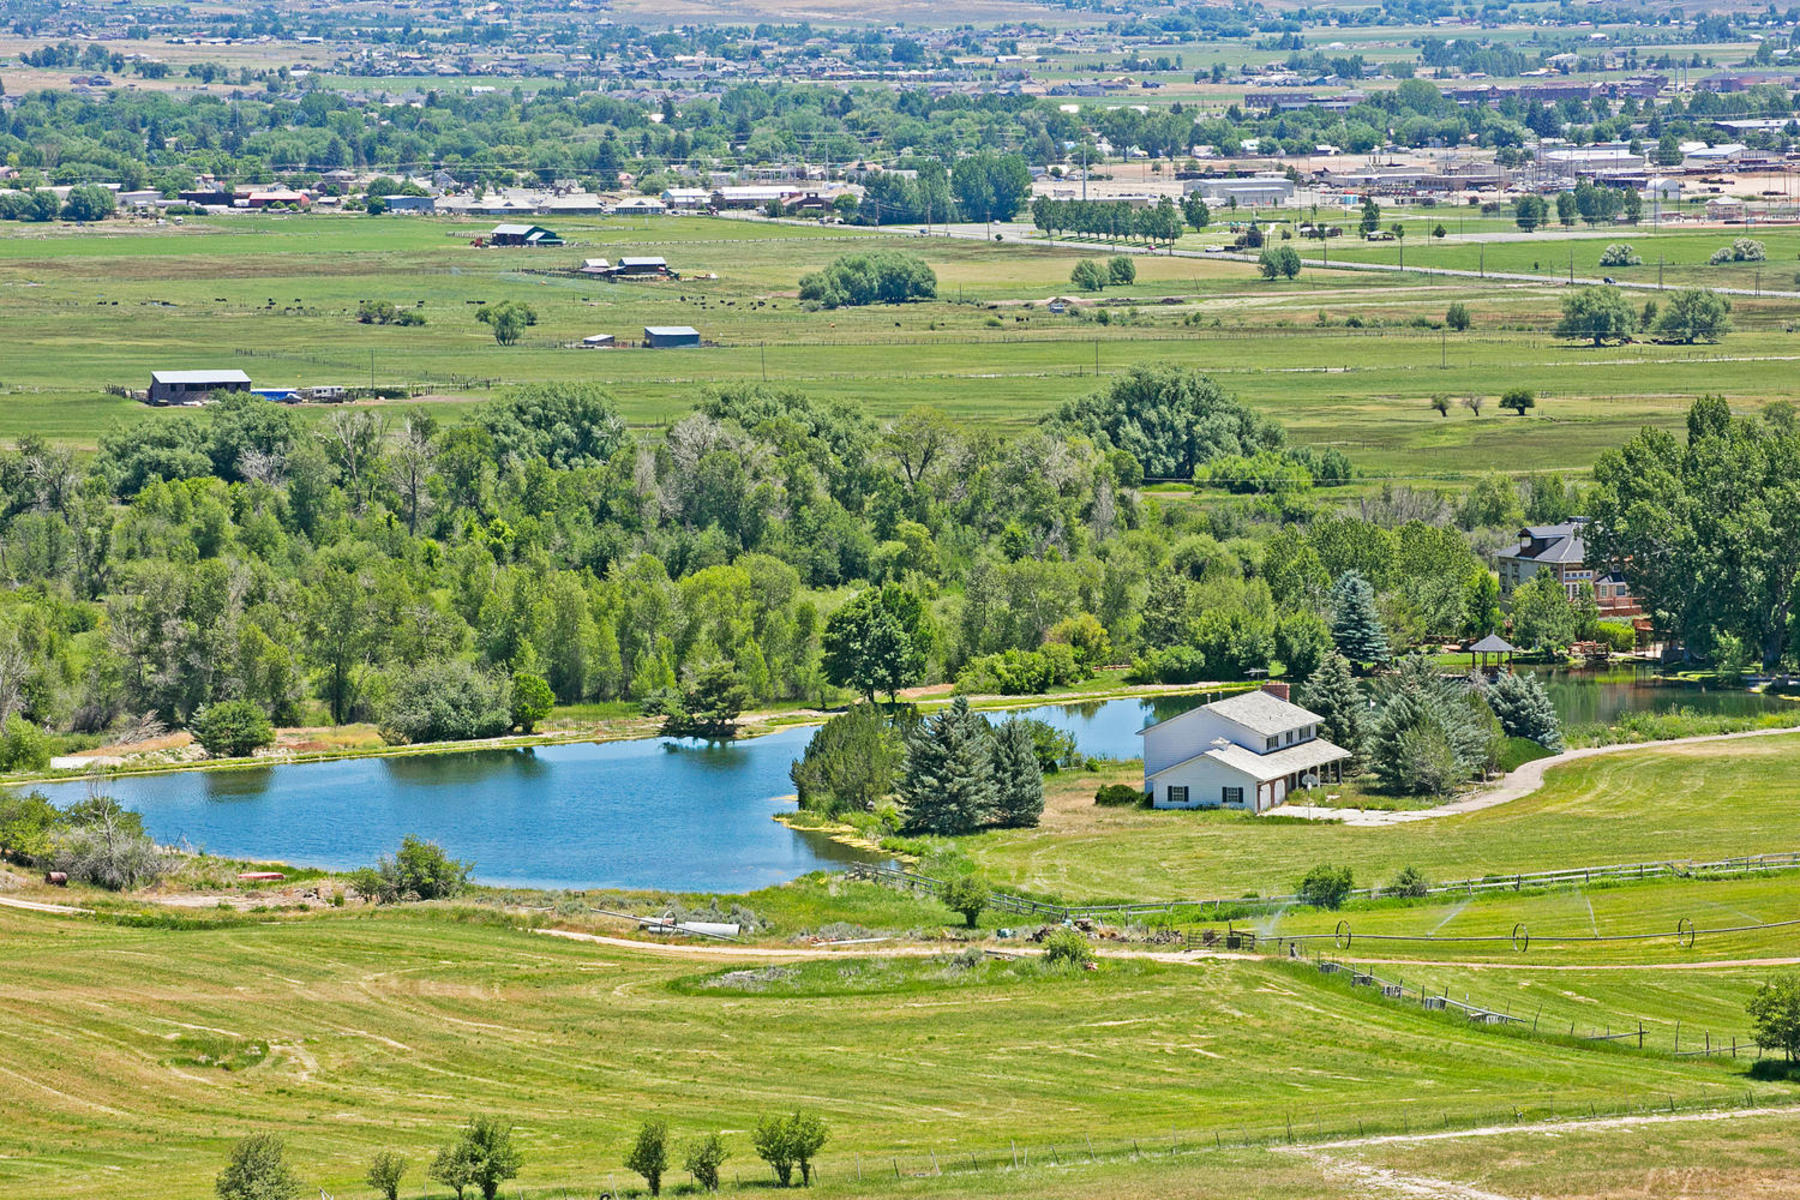 Maison unifamiliale pour l Vente à 10 Plus Acres Development Parcel In Midway! 815 East Main St Midway, Utah, 84032 États-Unis